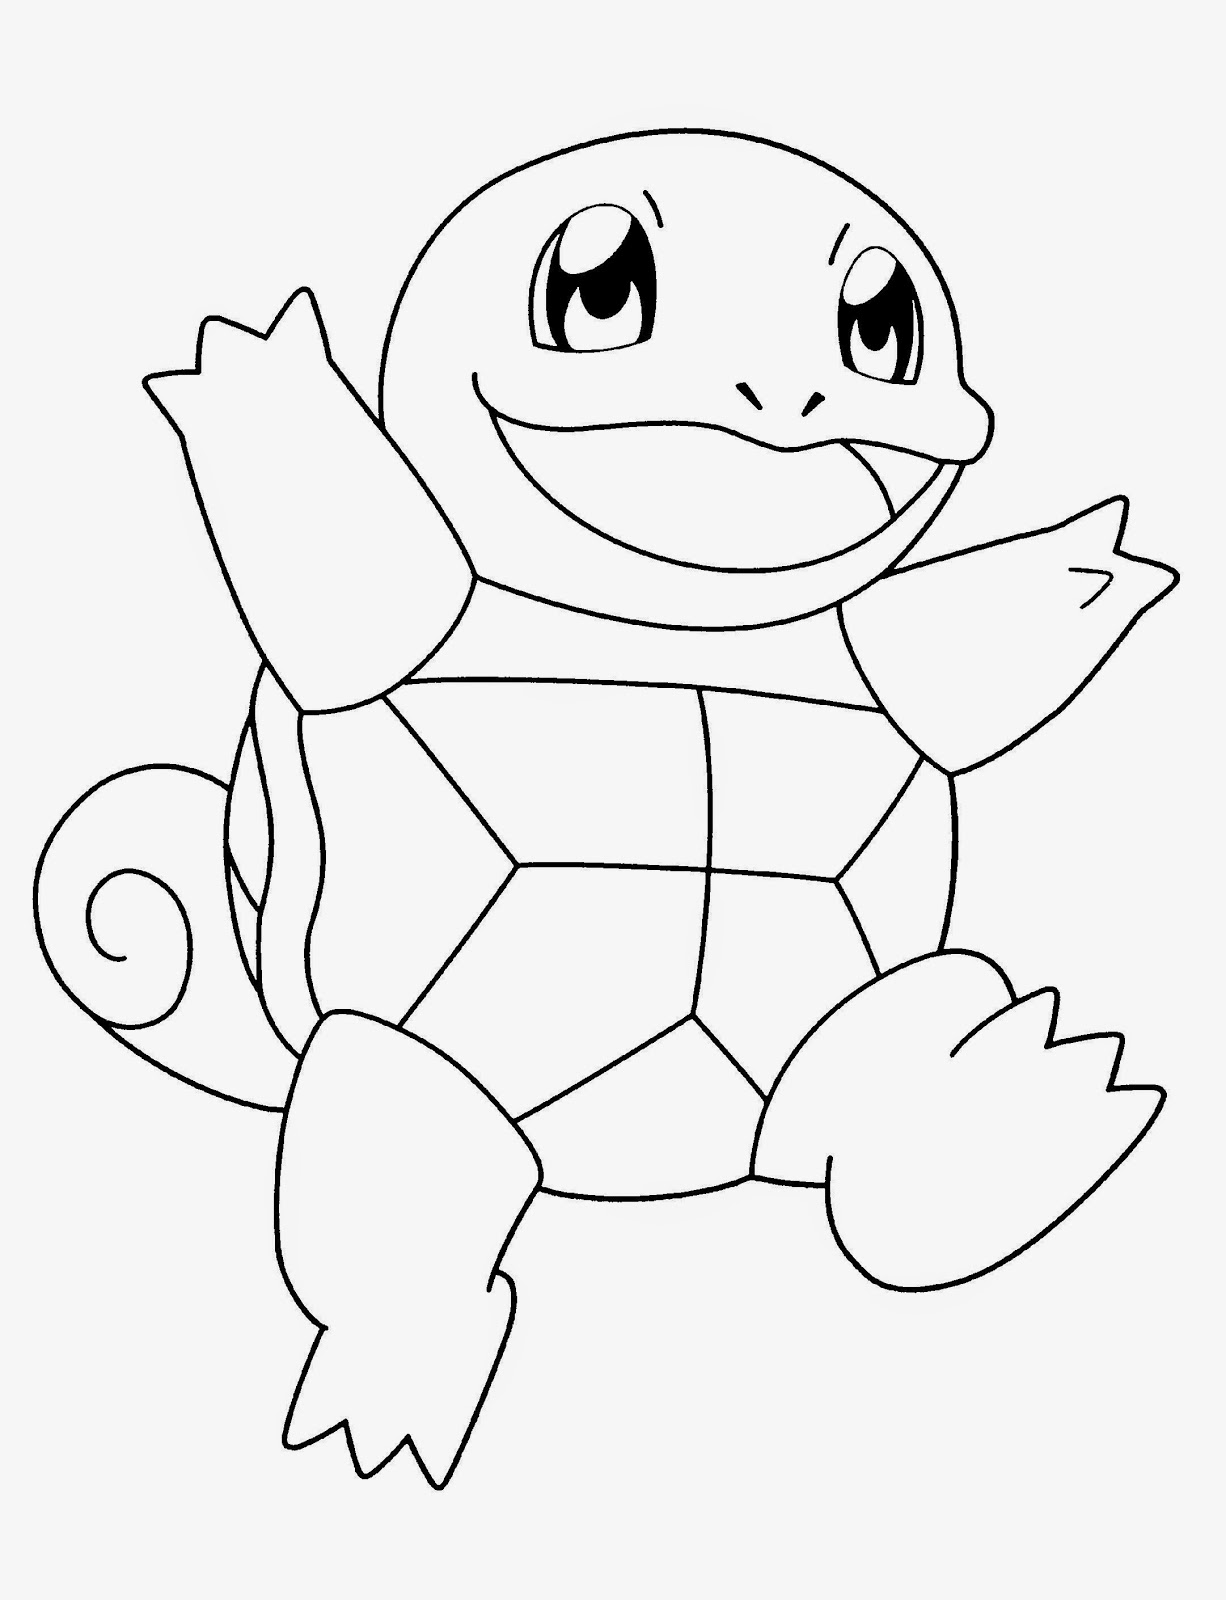 pokemon black and white pokemon coloring pages join your favorite pokemon on an and white pokemon black